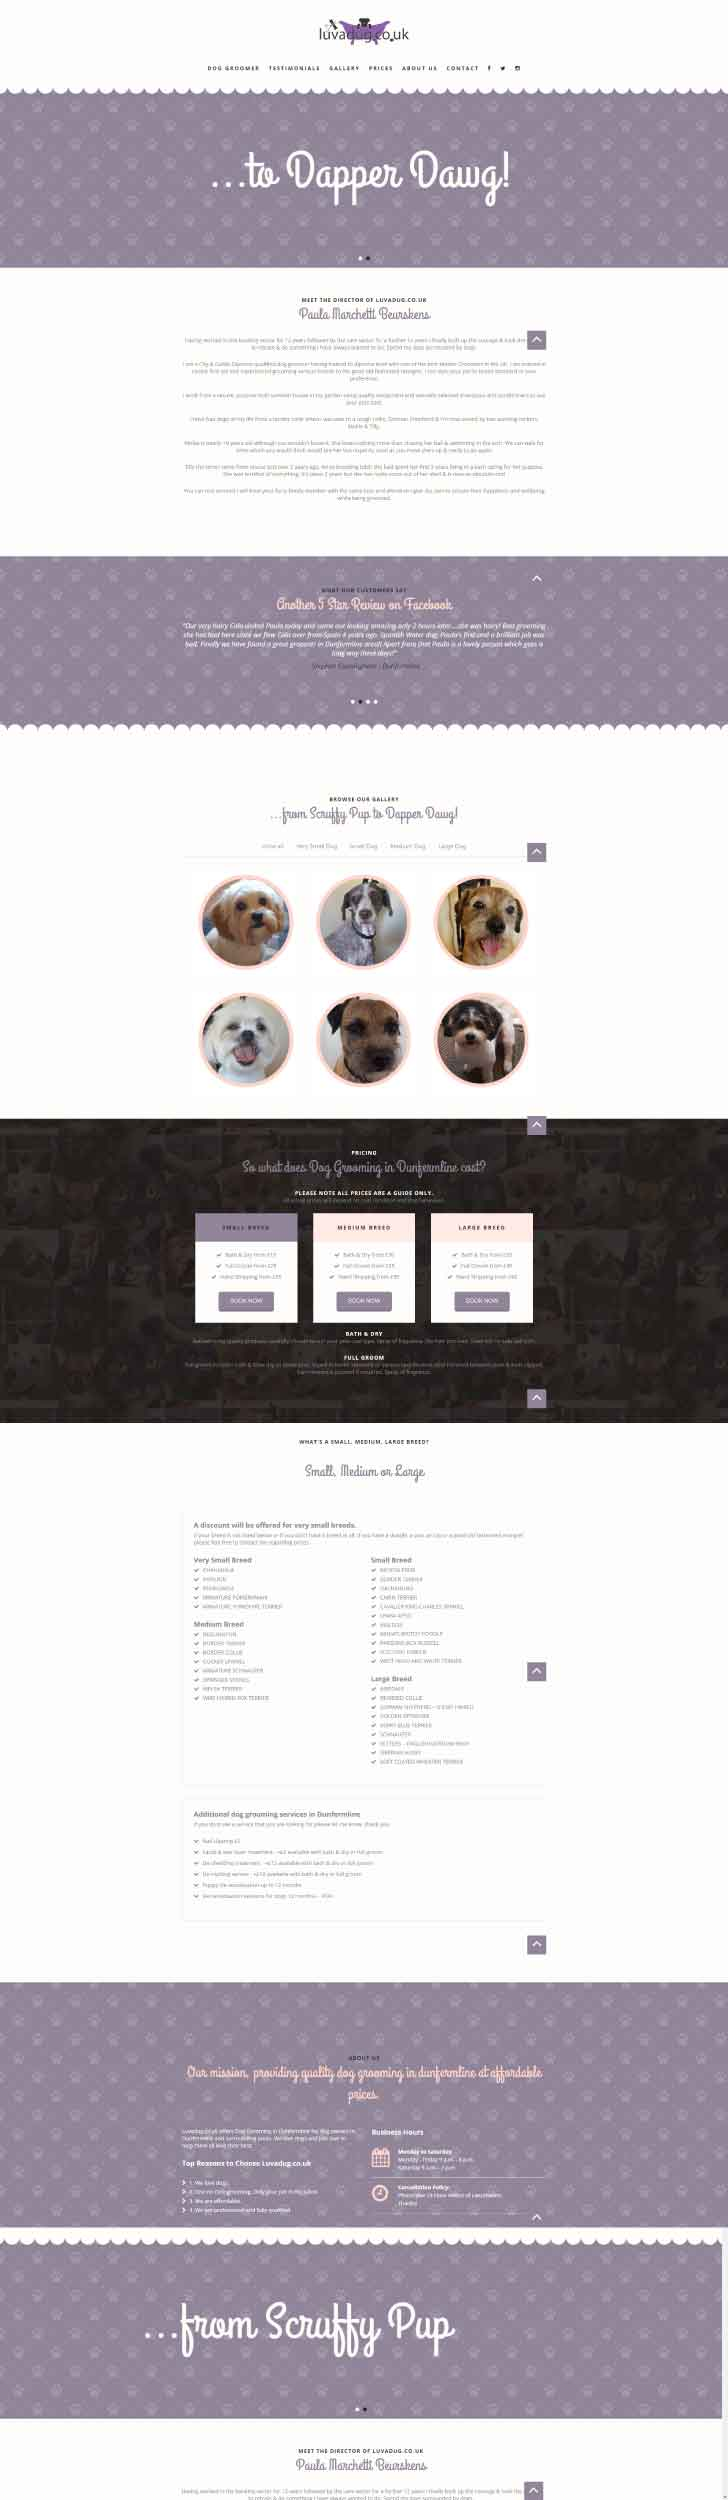 Luvadug Dog Grooming Website